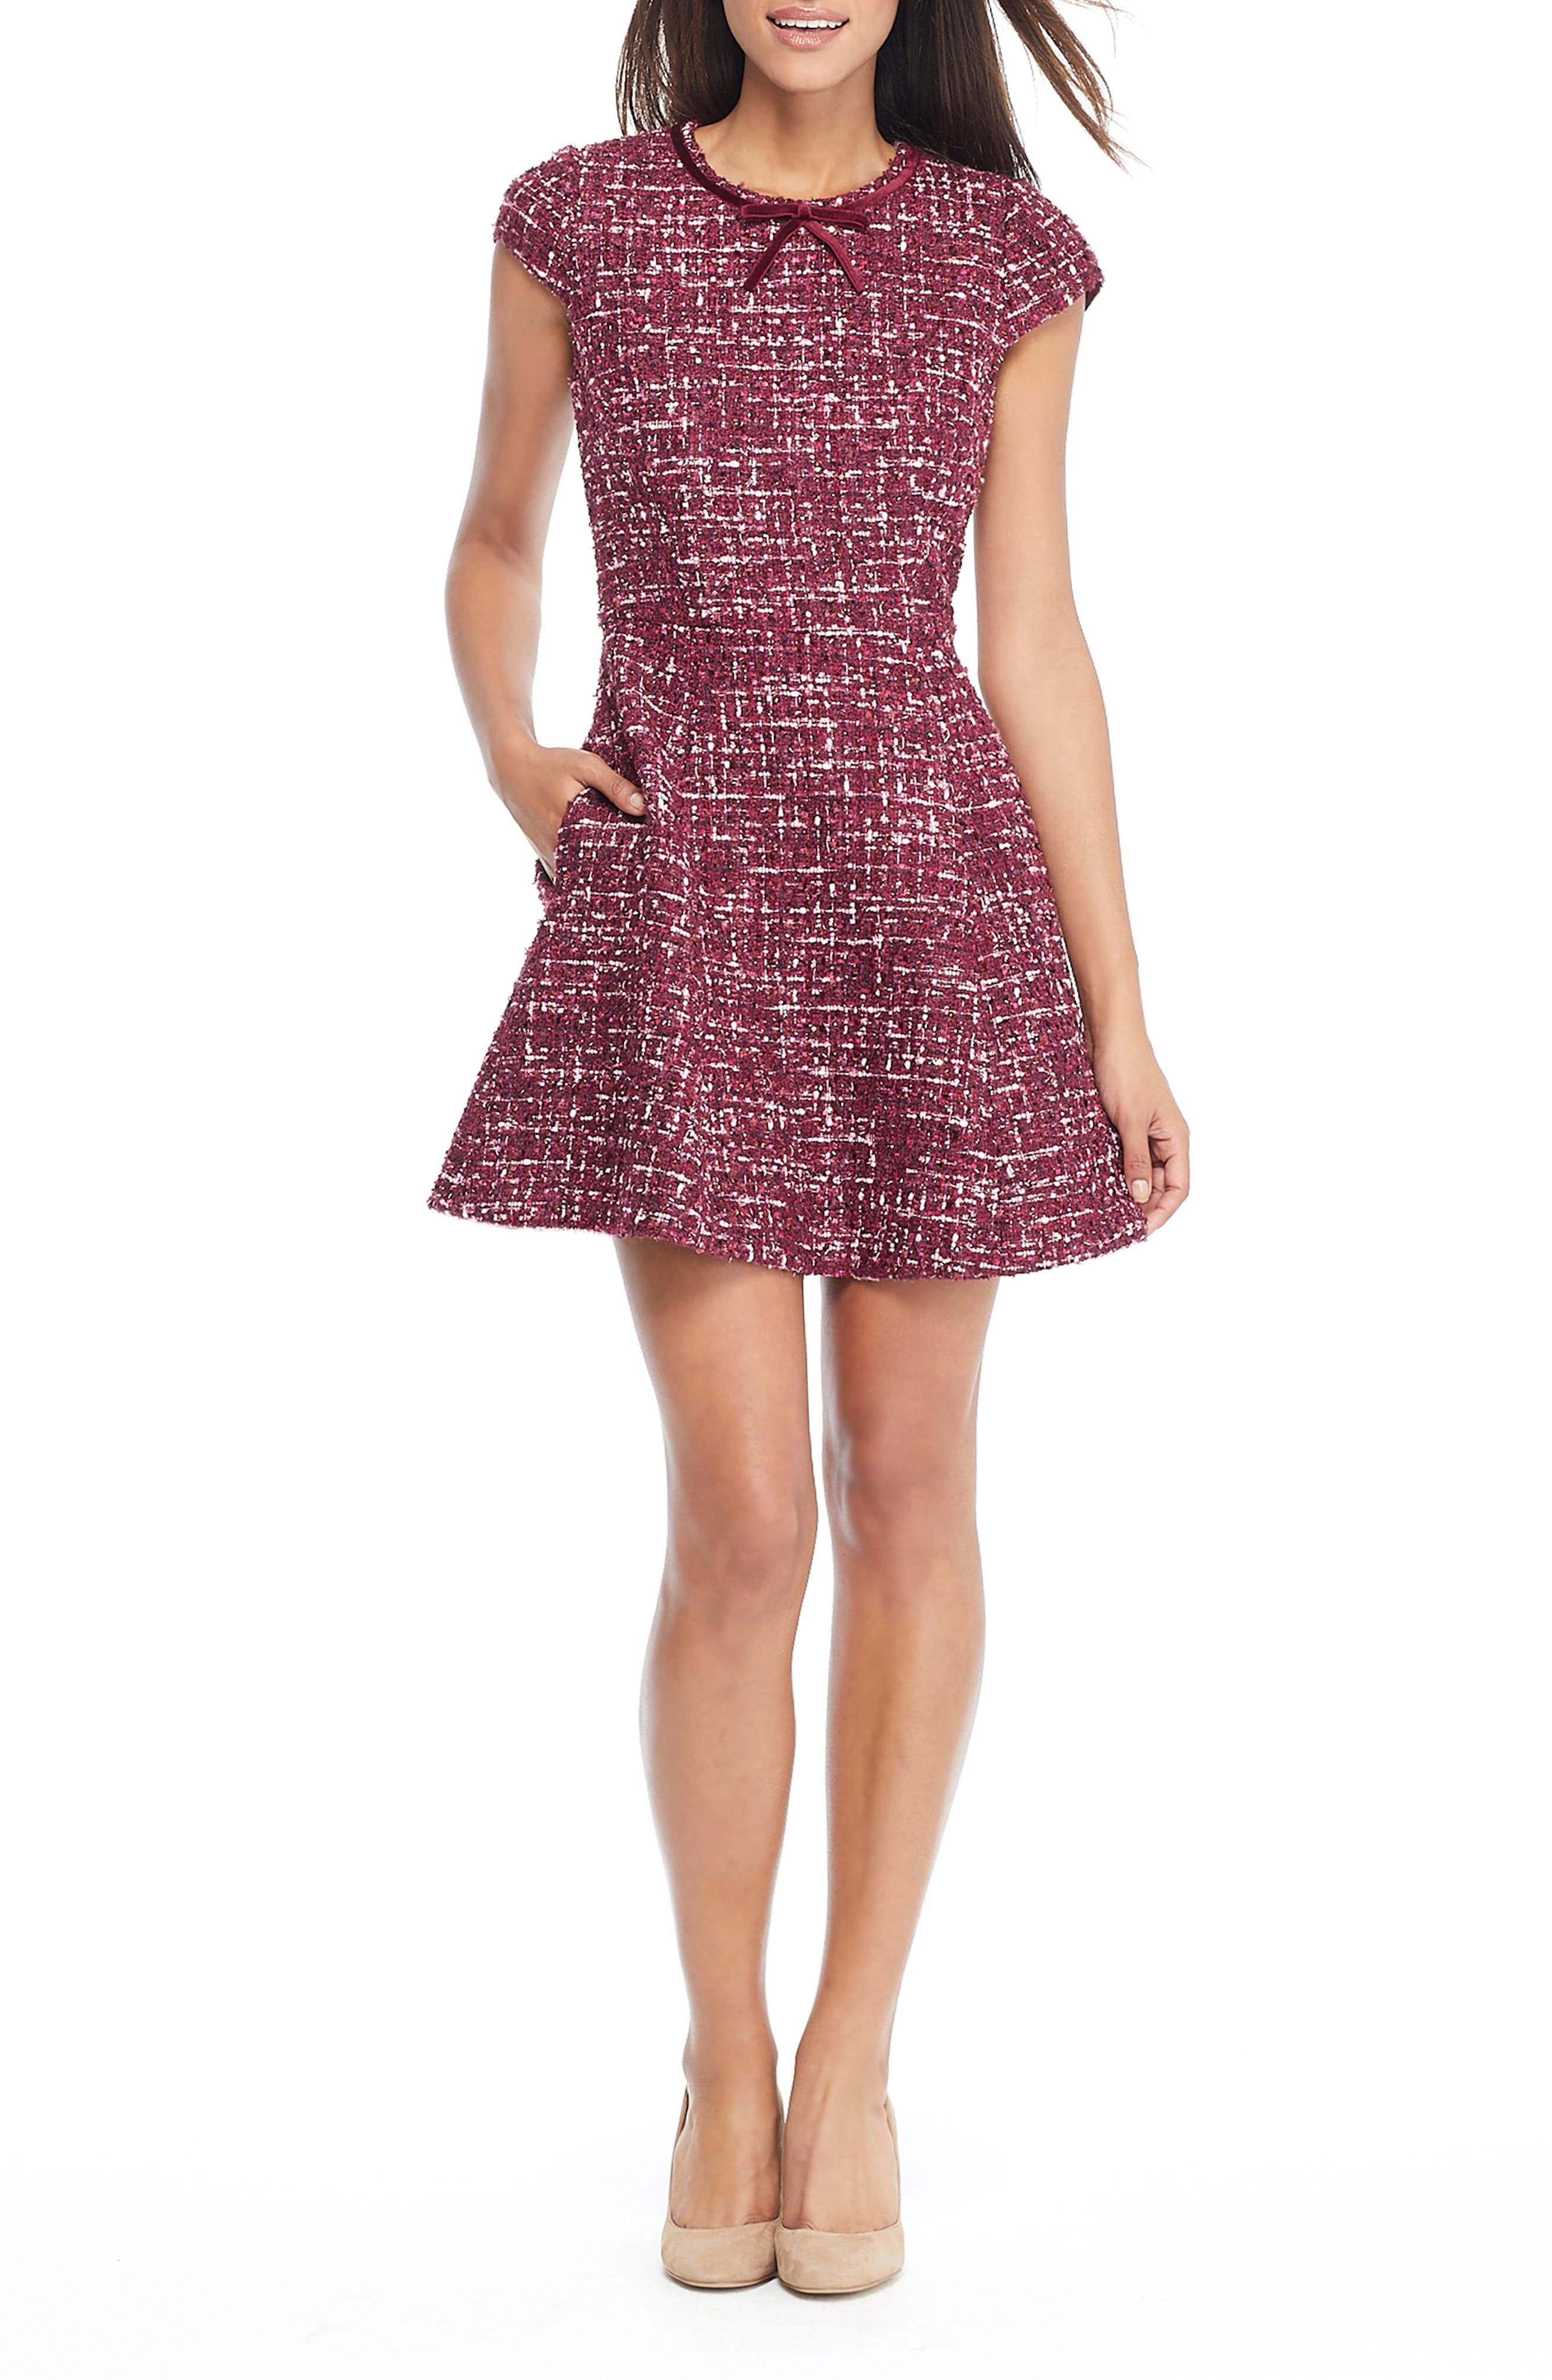 GAL MEETS GLAM COLLECTION, Nell Bouclé Dreams Tweed Fit & Flare Dress, Main thumbnail 1, color, 650